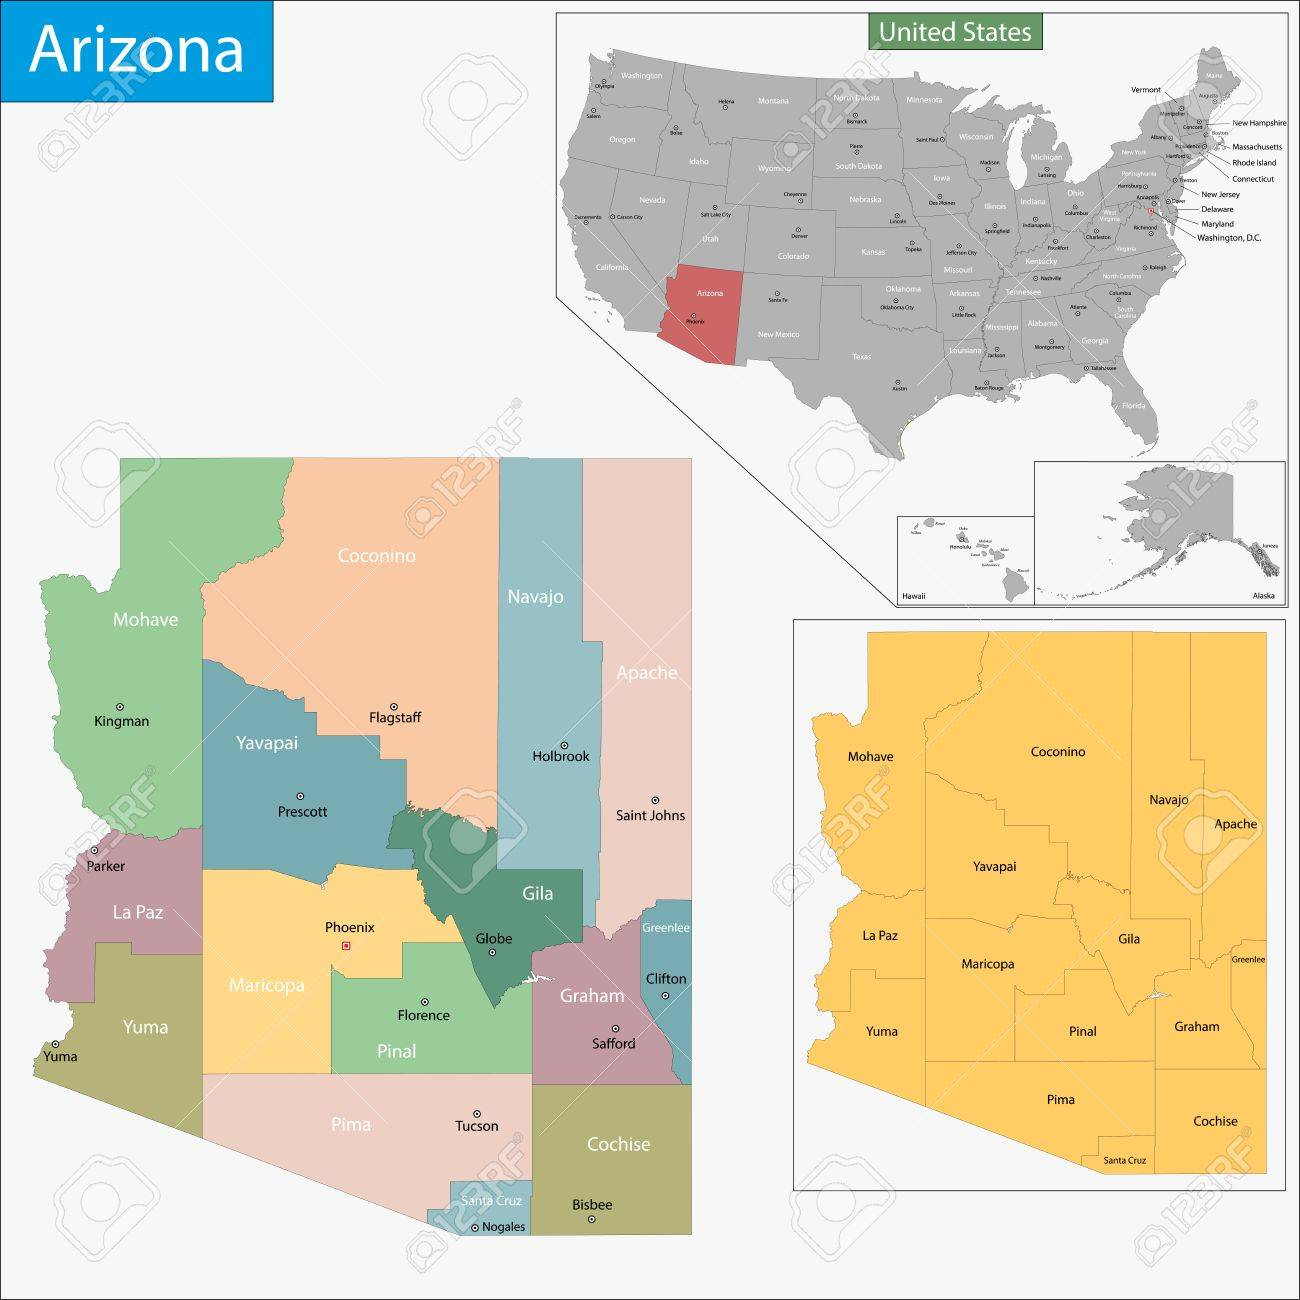 Map Of Arizona State Designed In Illustration With The Counties - Arizona state map with counties